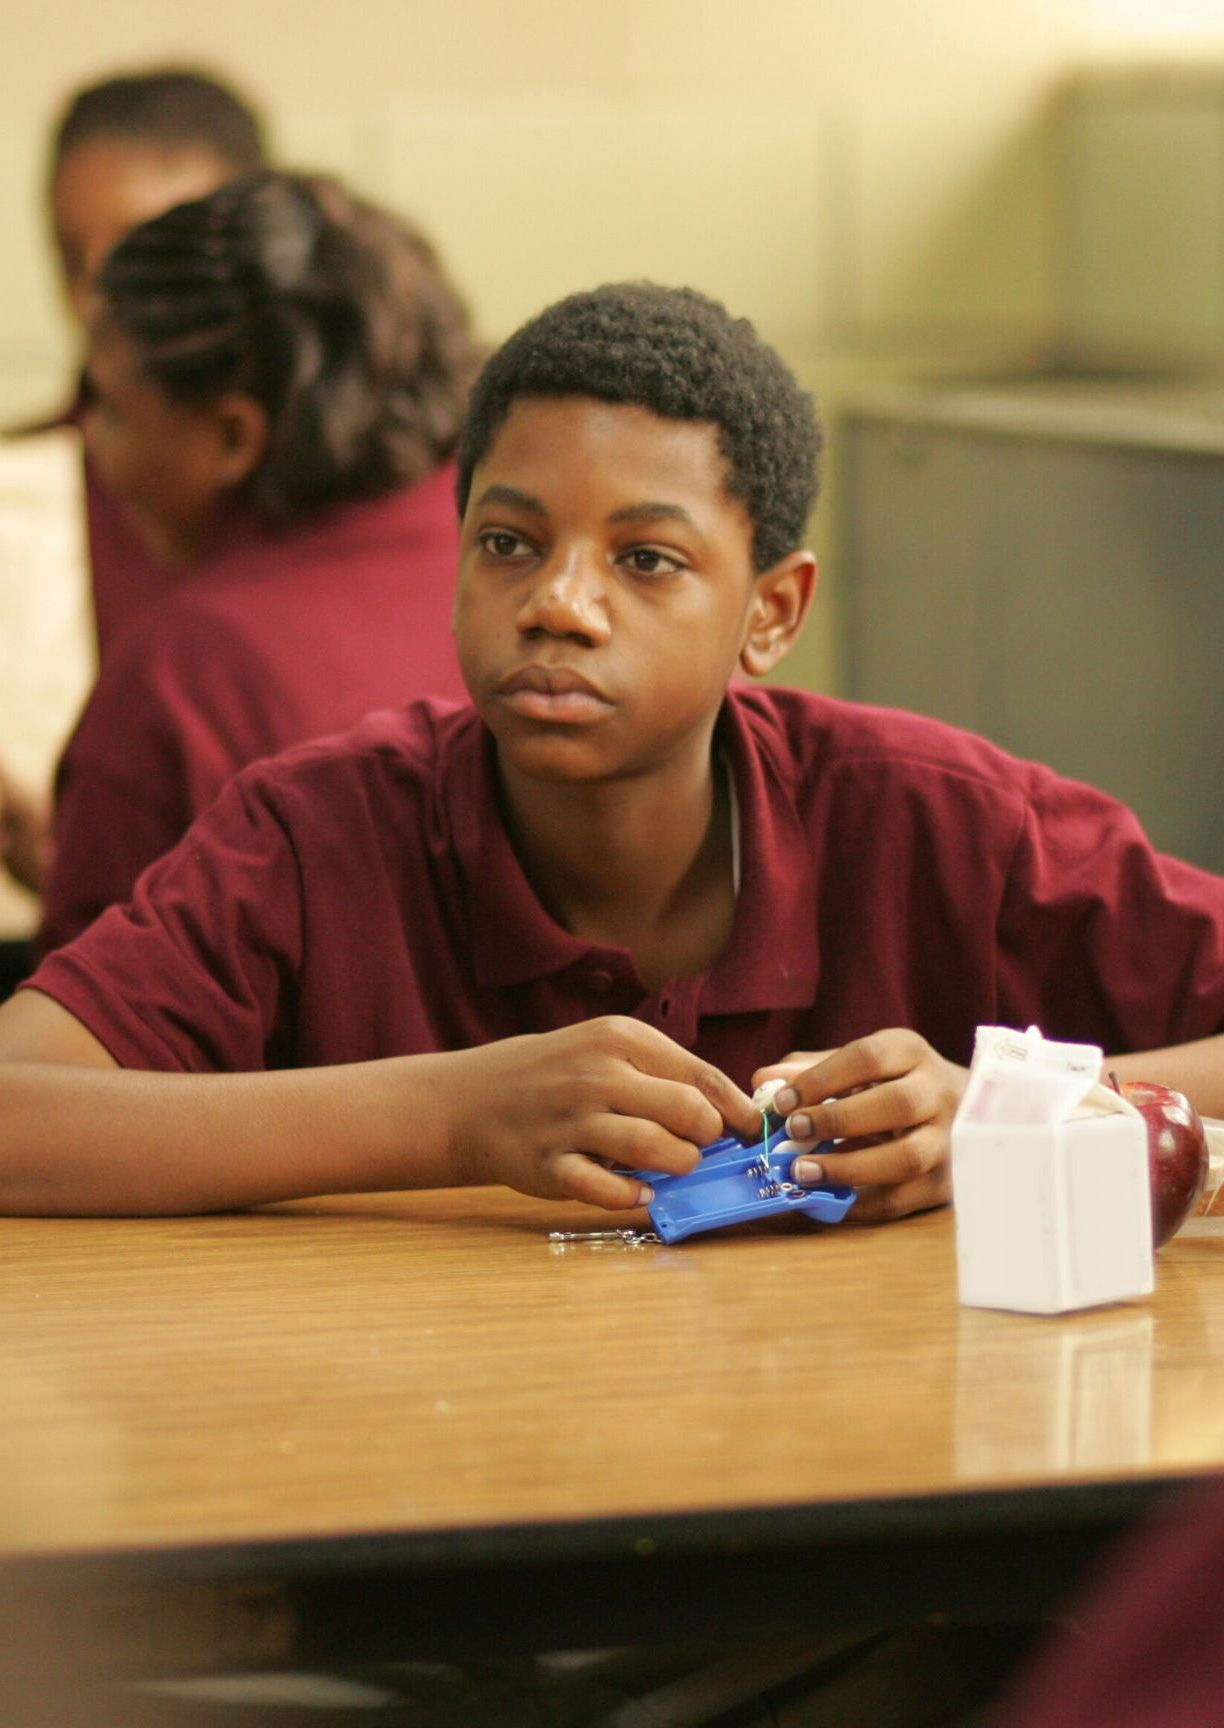 """Jermaine Crawford as Duquan """"Dukie"""" Weems in The Wire ..."""